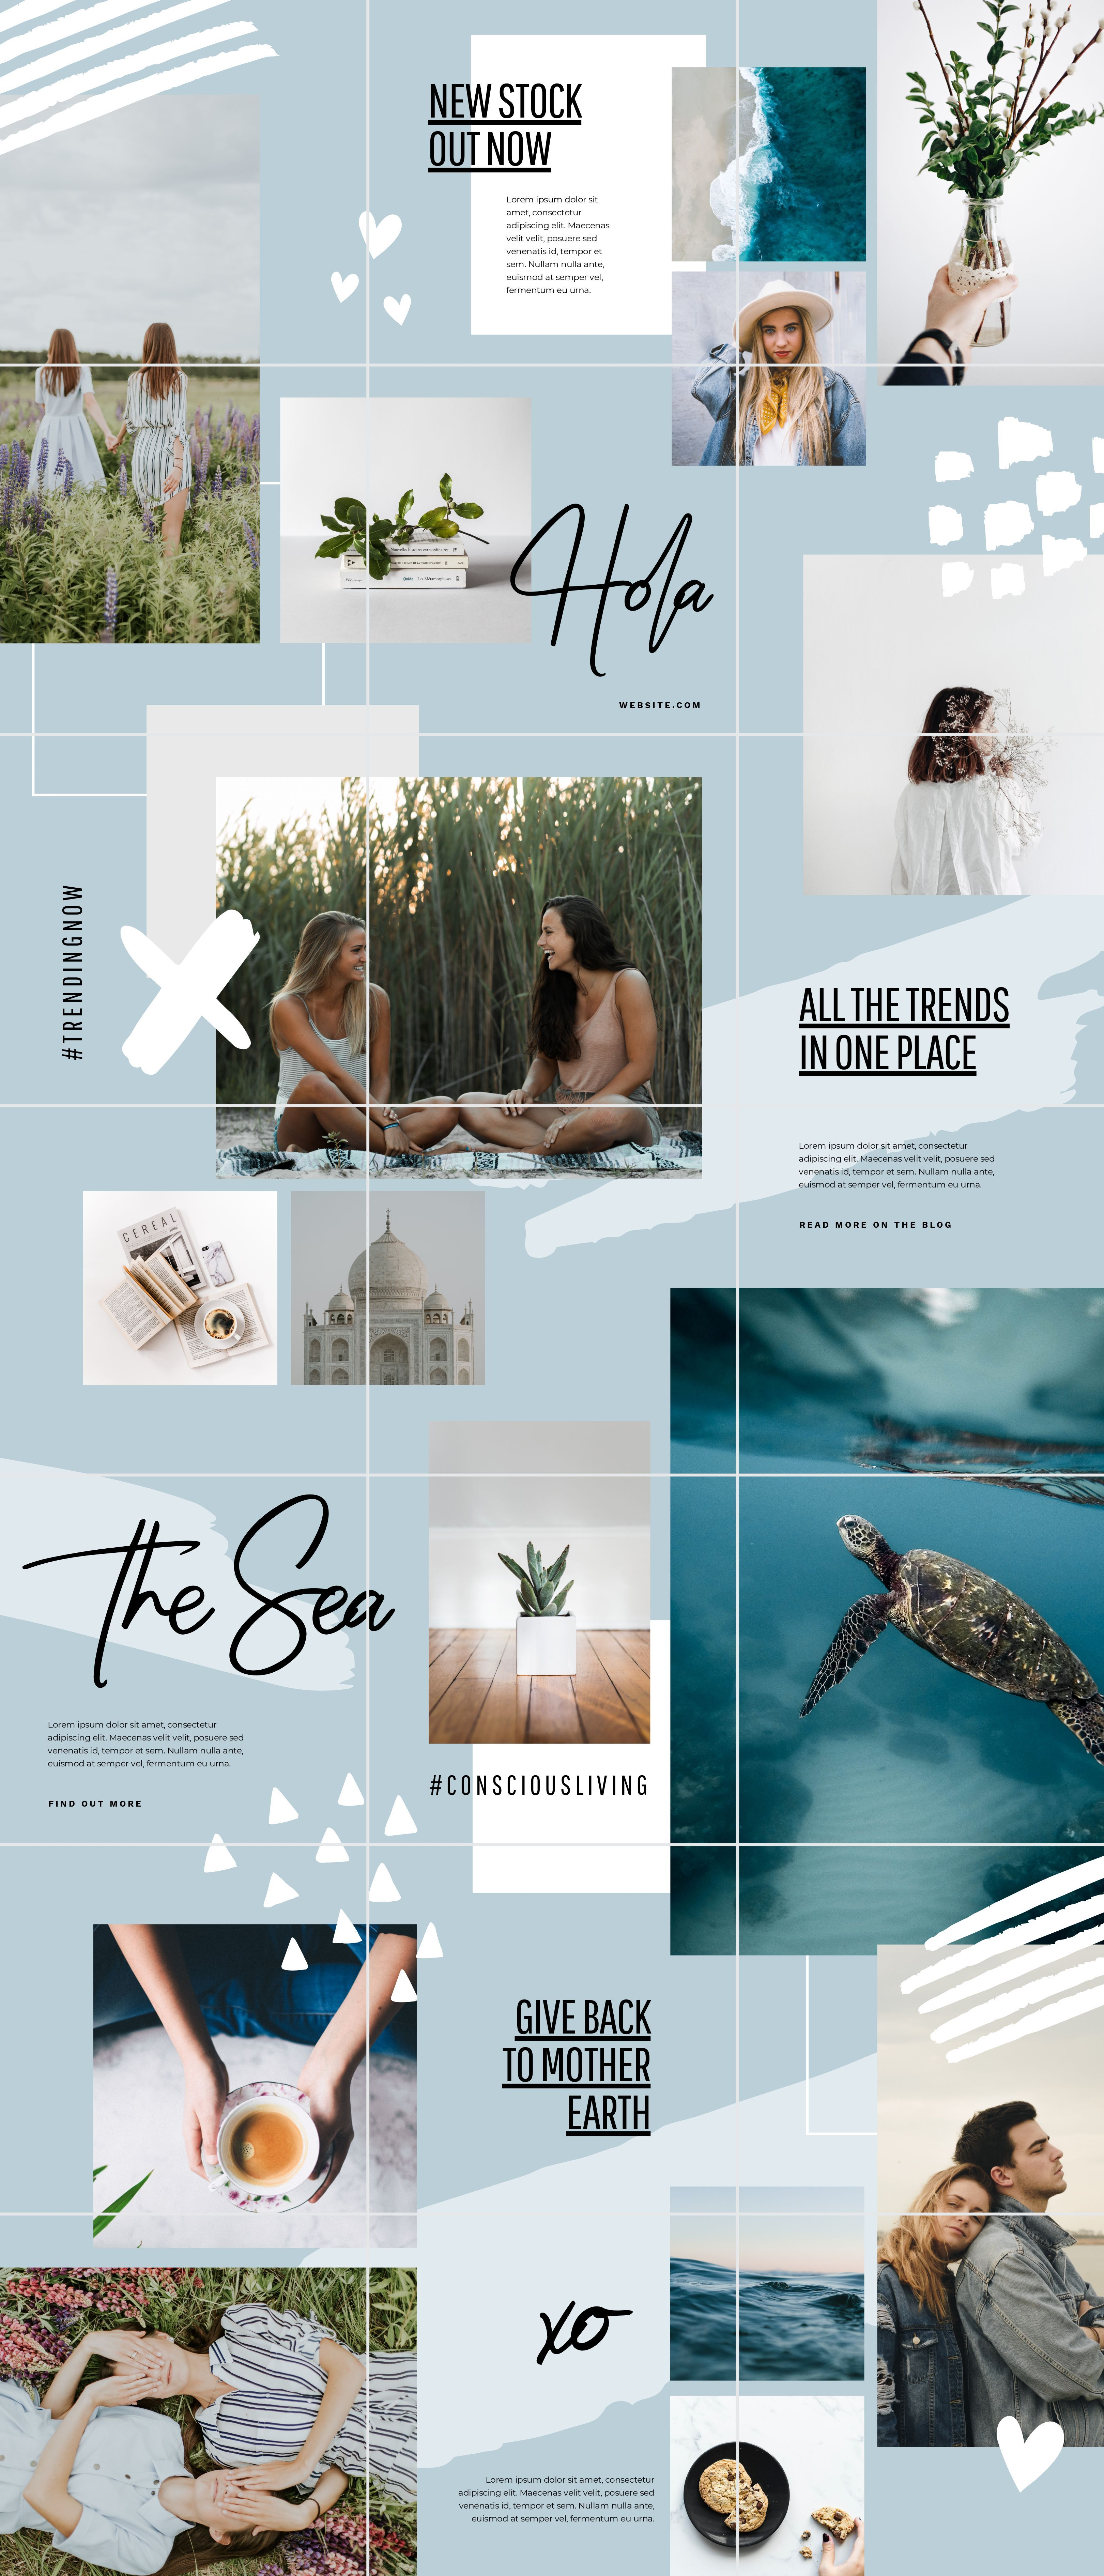 How To Create A Beautiful Instagram Puzzle Feed 5 Free Templates Easil Instagram Theme Feed Instagram Grid Design Instagram Feed Layout